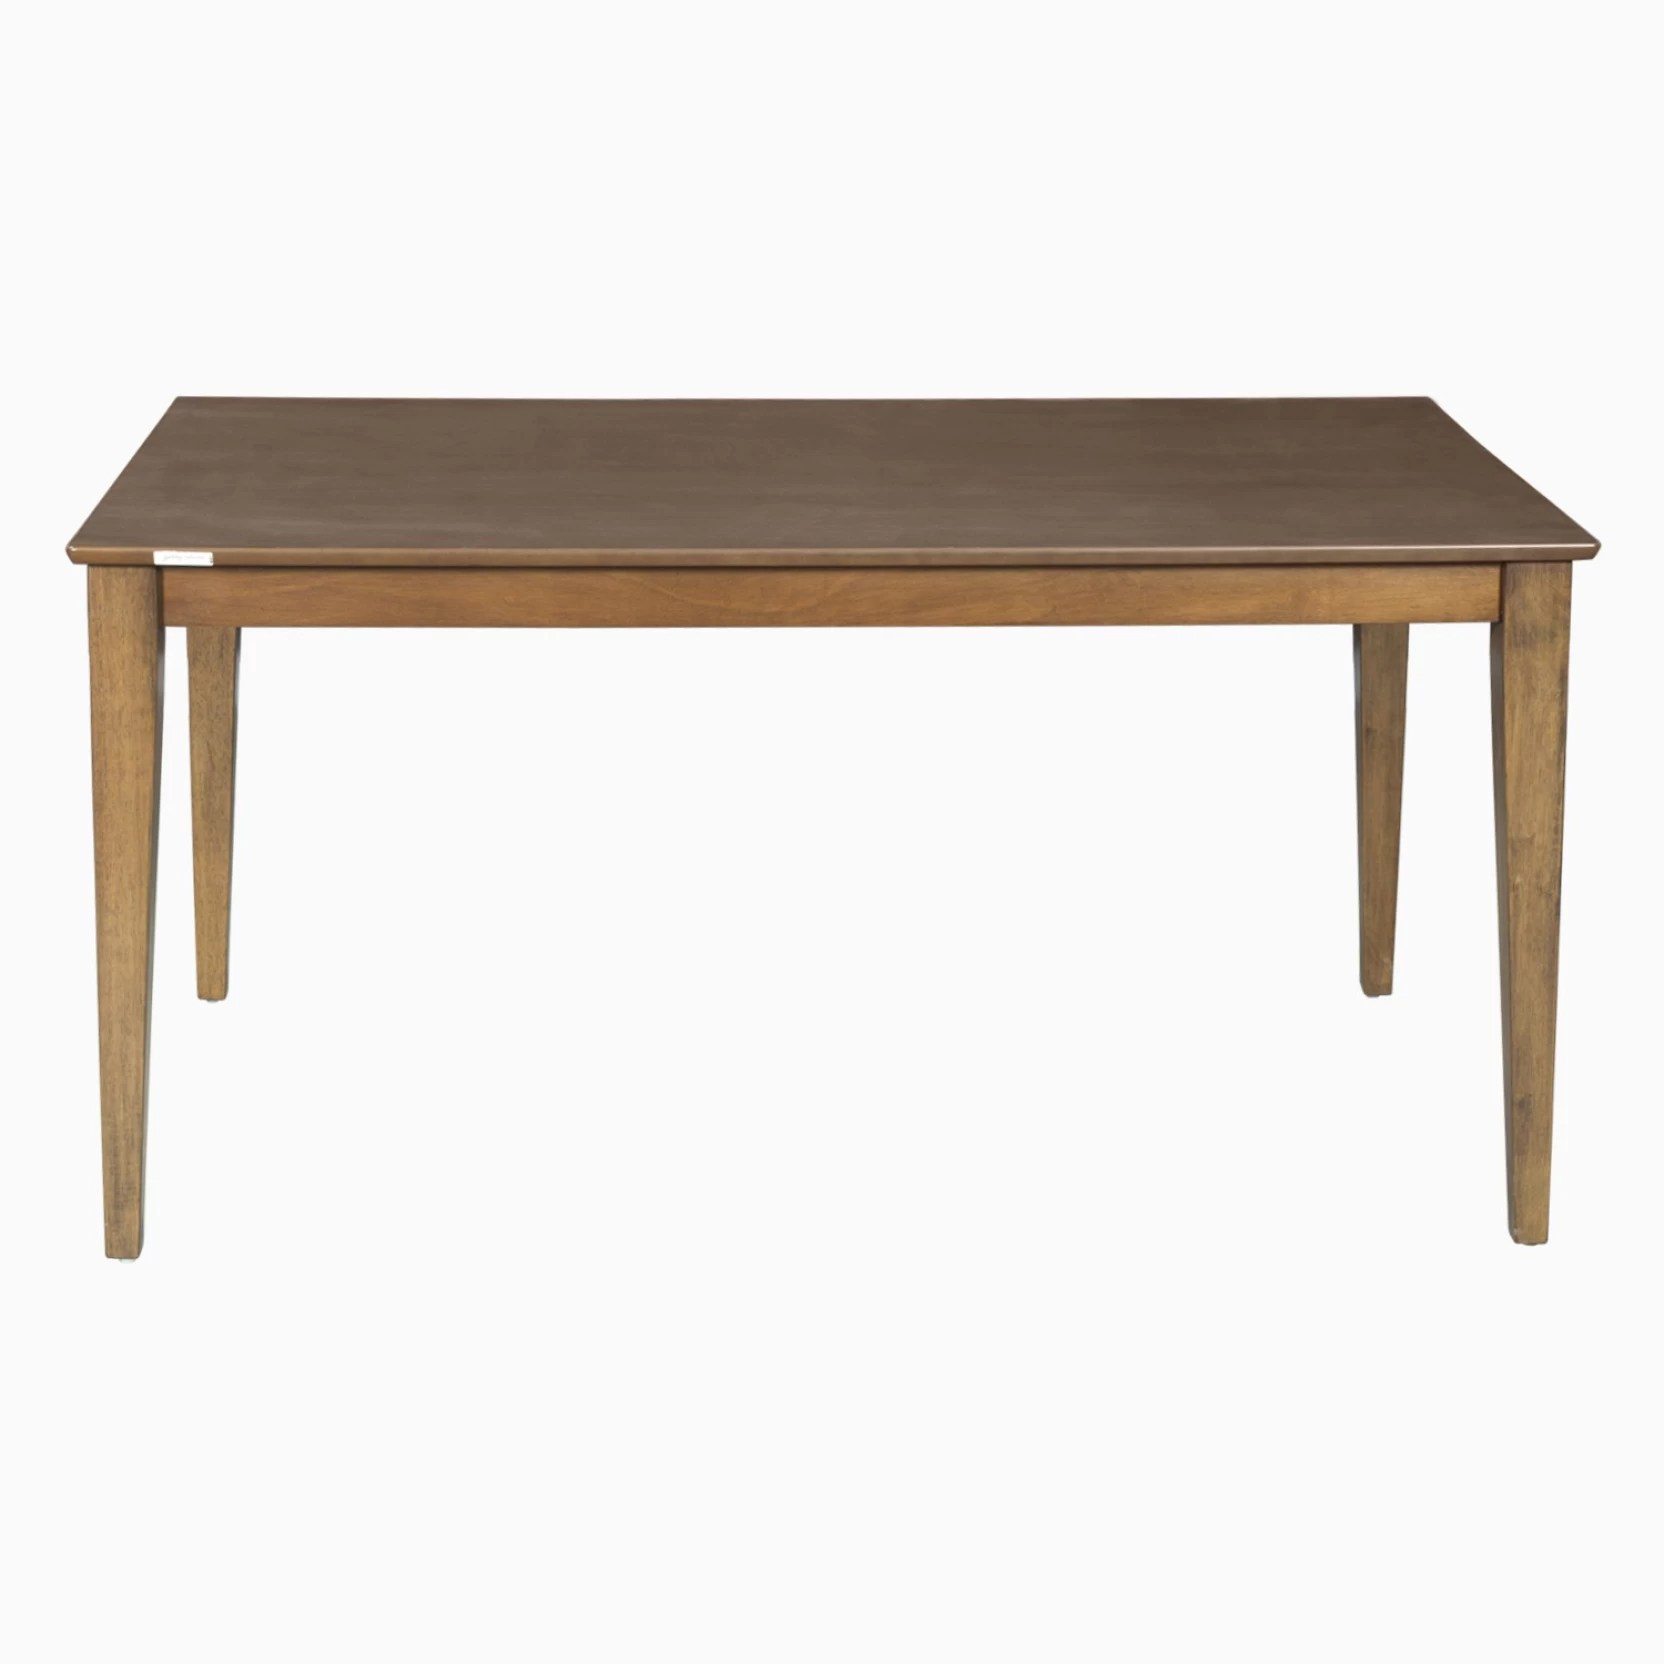 Bettsofa Interio Ch Godrej Interio Venus Dining Table Engineered Wood 6 Seater Dining